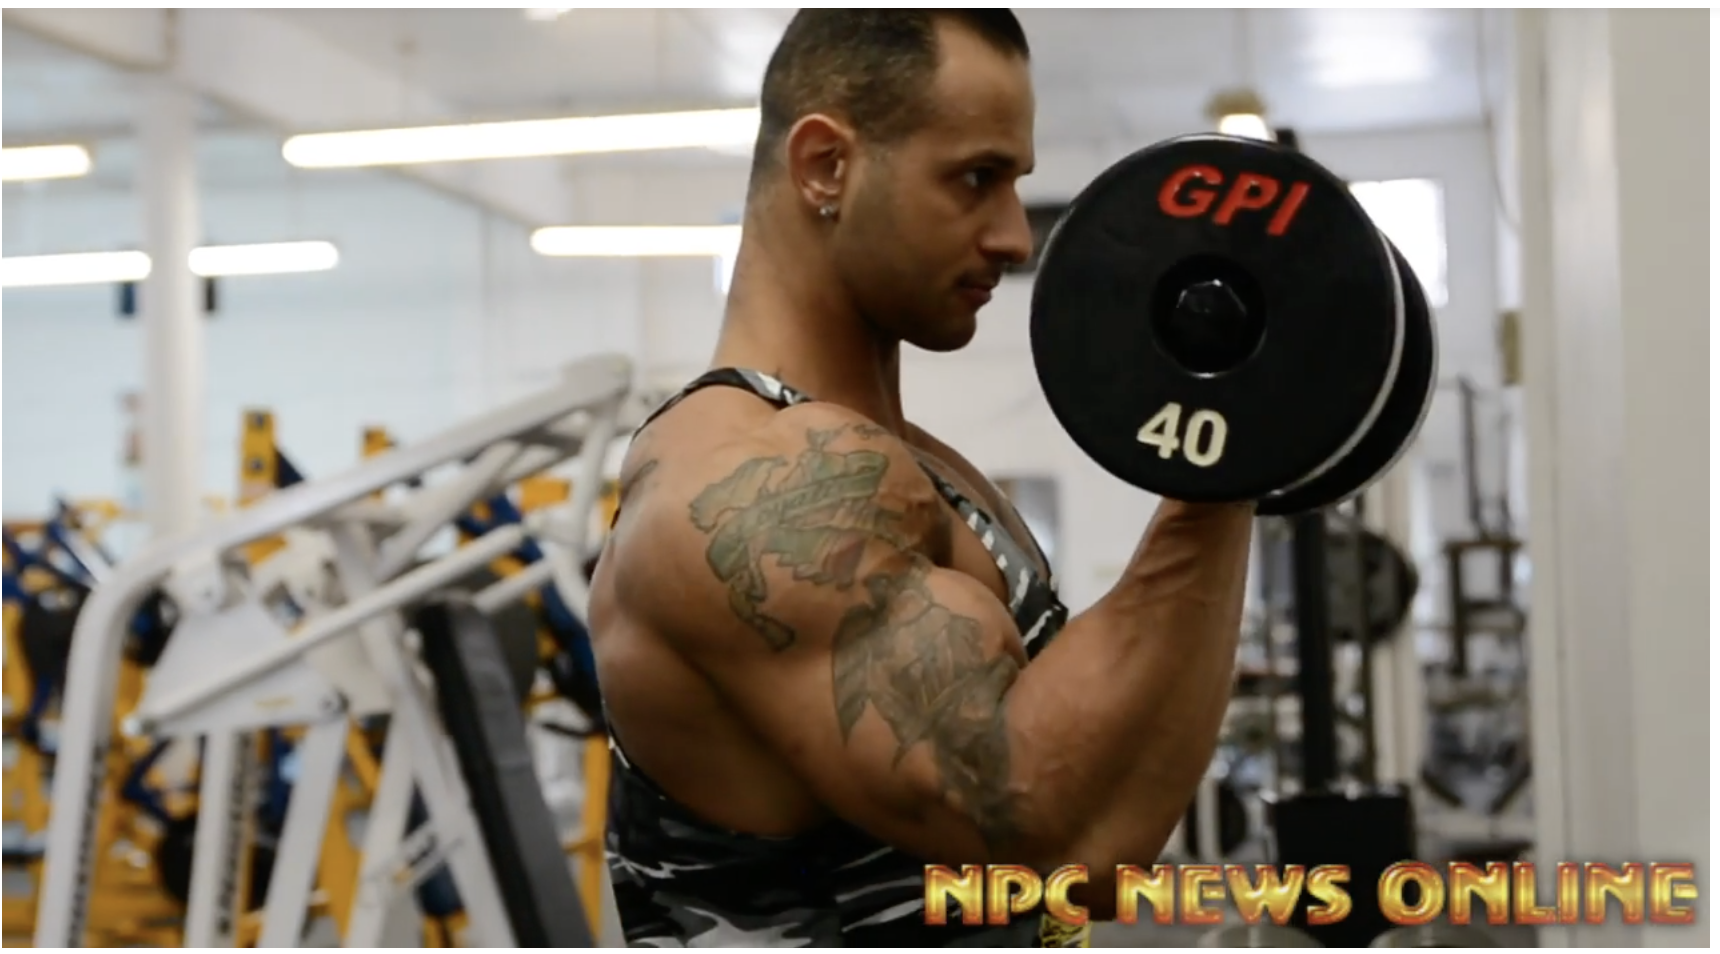 NPC Classic Physique Competitor Greg Scampone Arms Workout For The 2018 Arnold Amateur